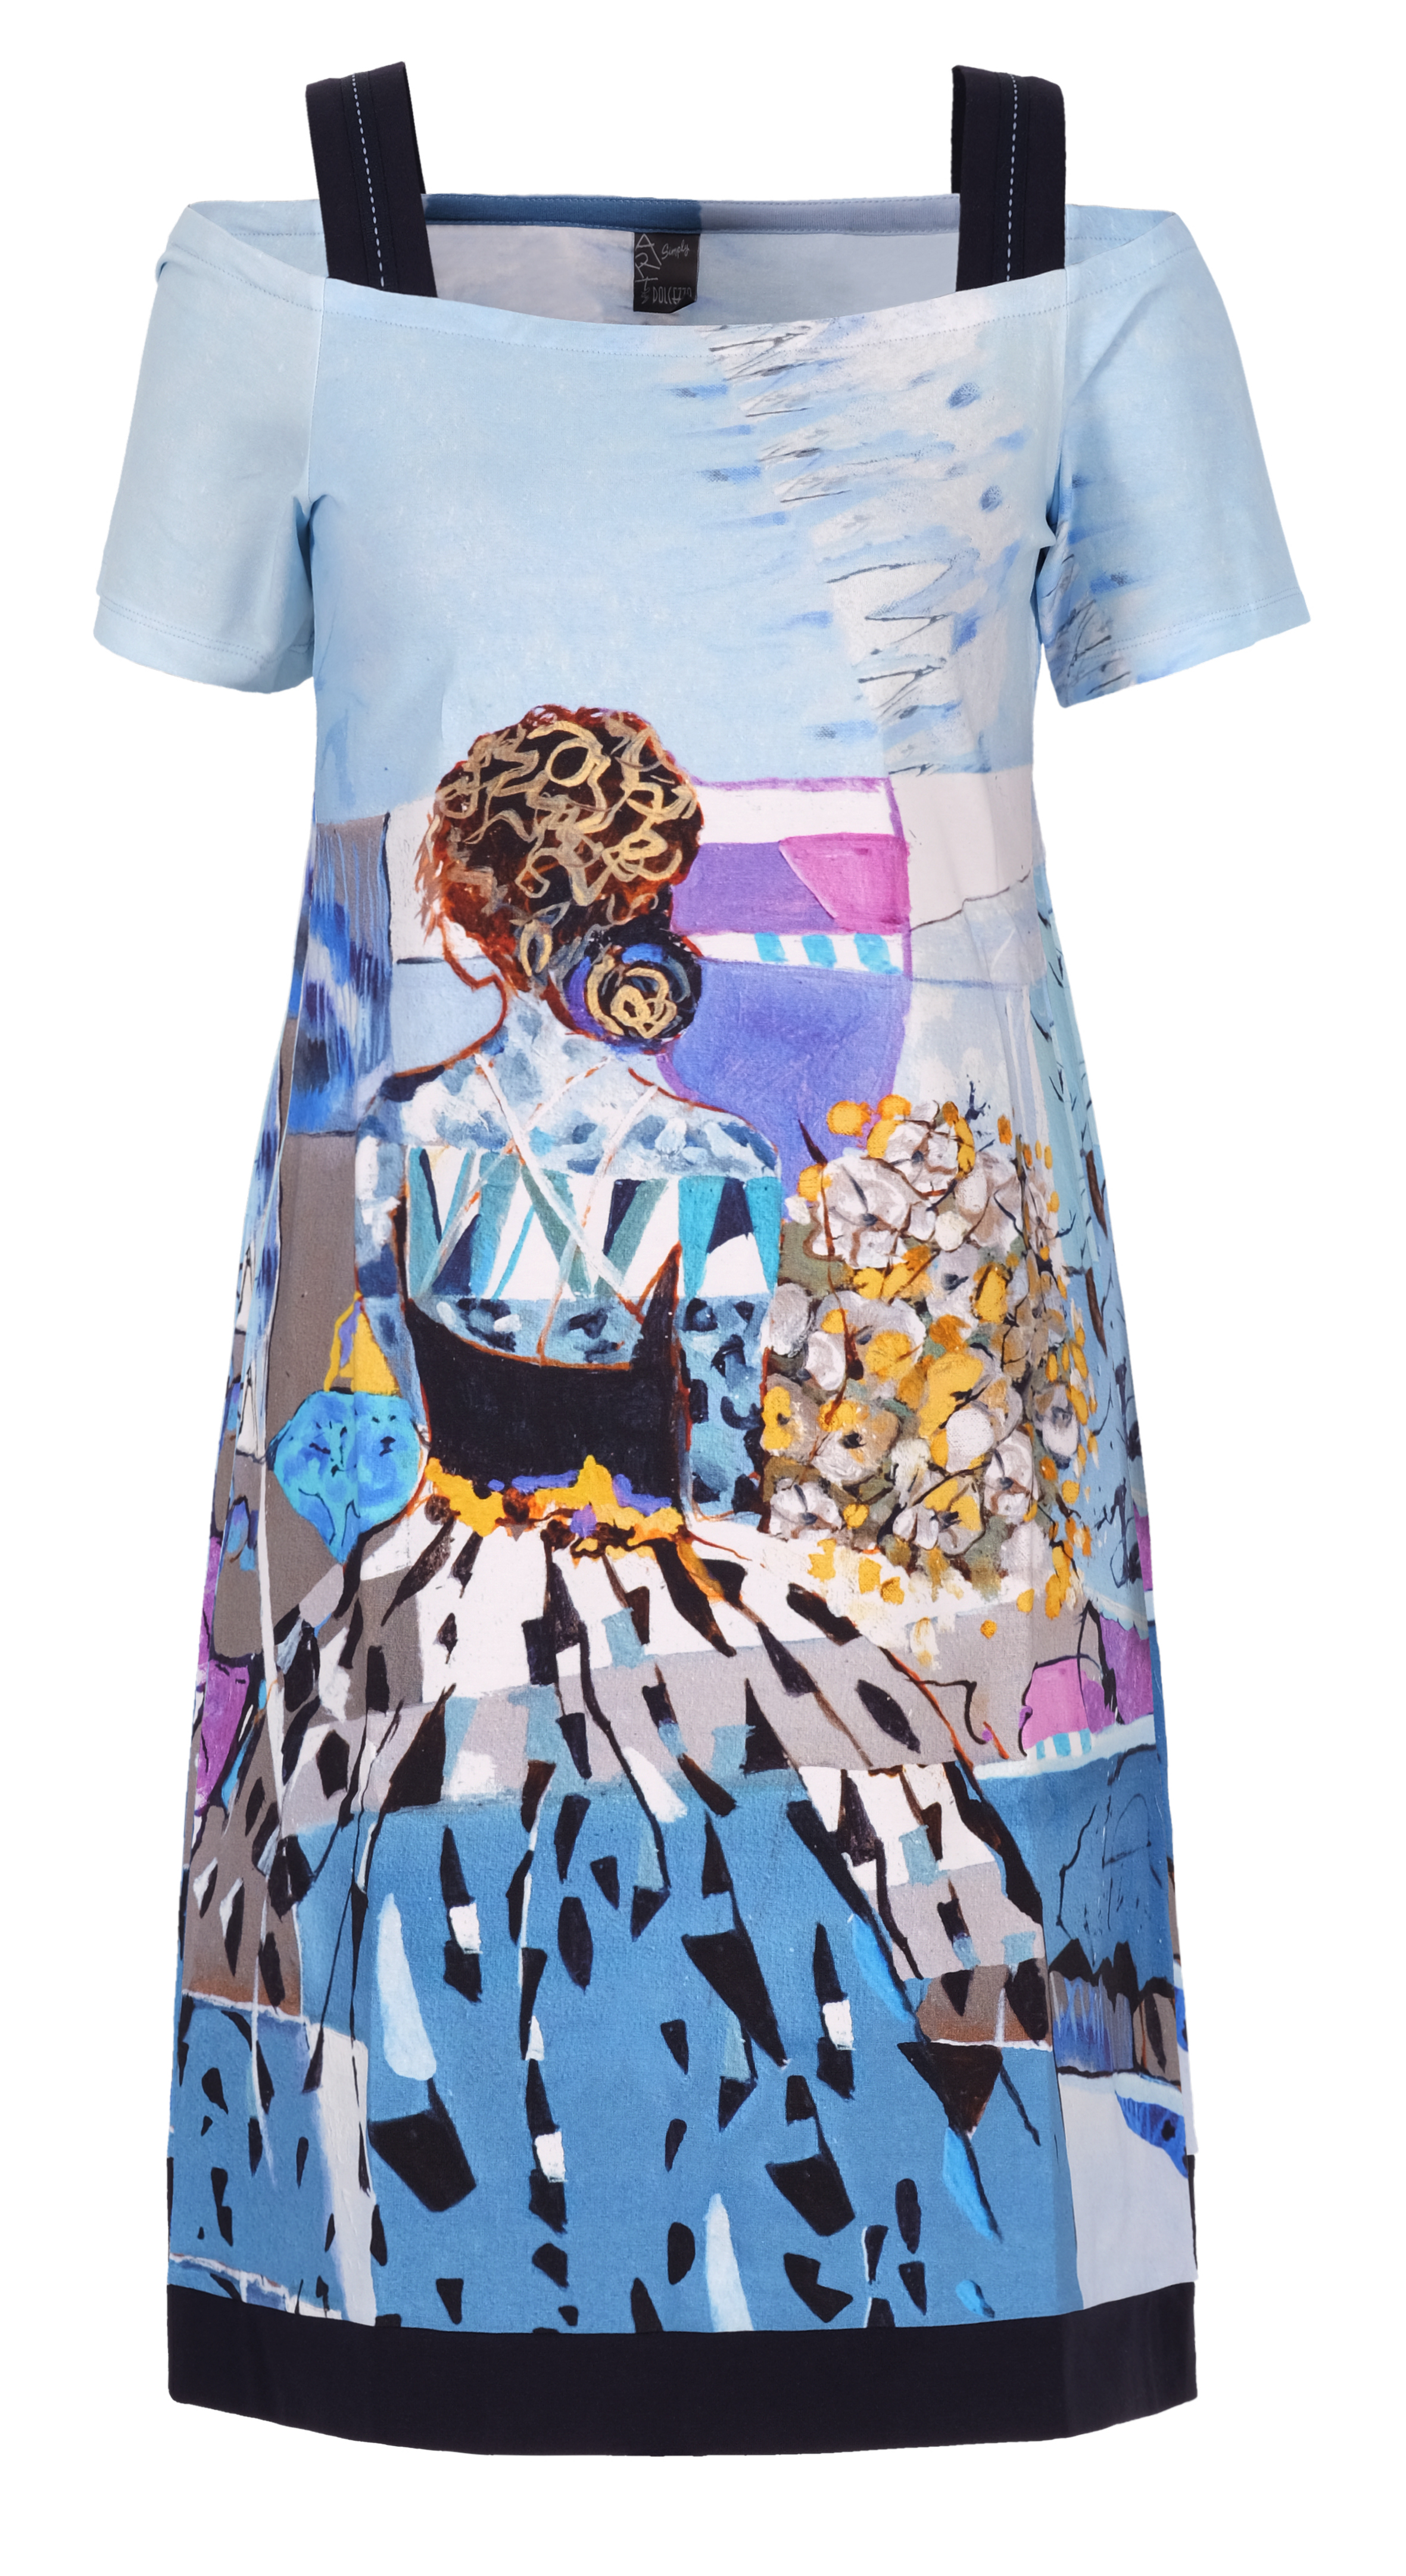 Simply Art Dolcezza: Princess Danae Abstract Art Flared Cold Shoulder Dress (3 Left!) Dolcezza_Simplyart_21745